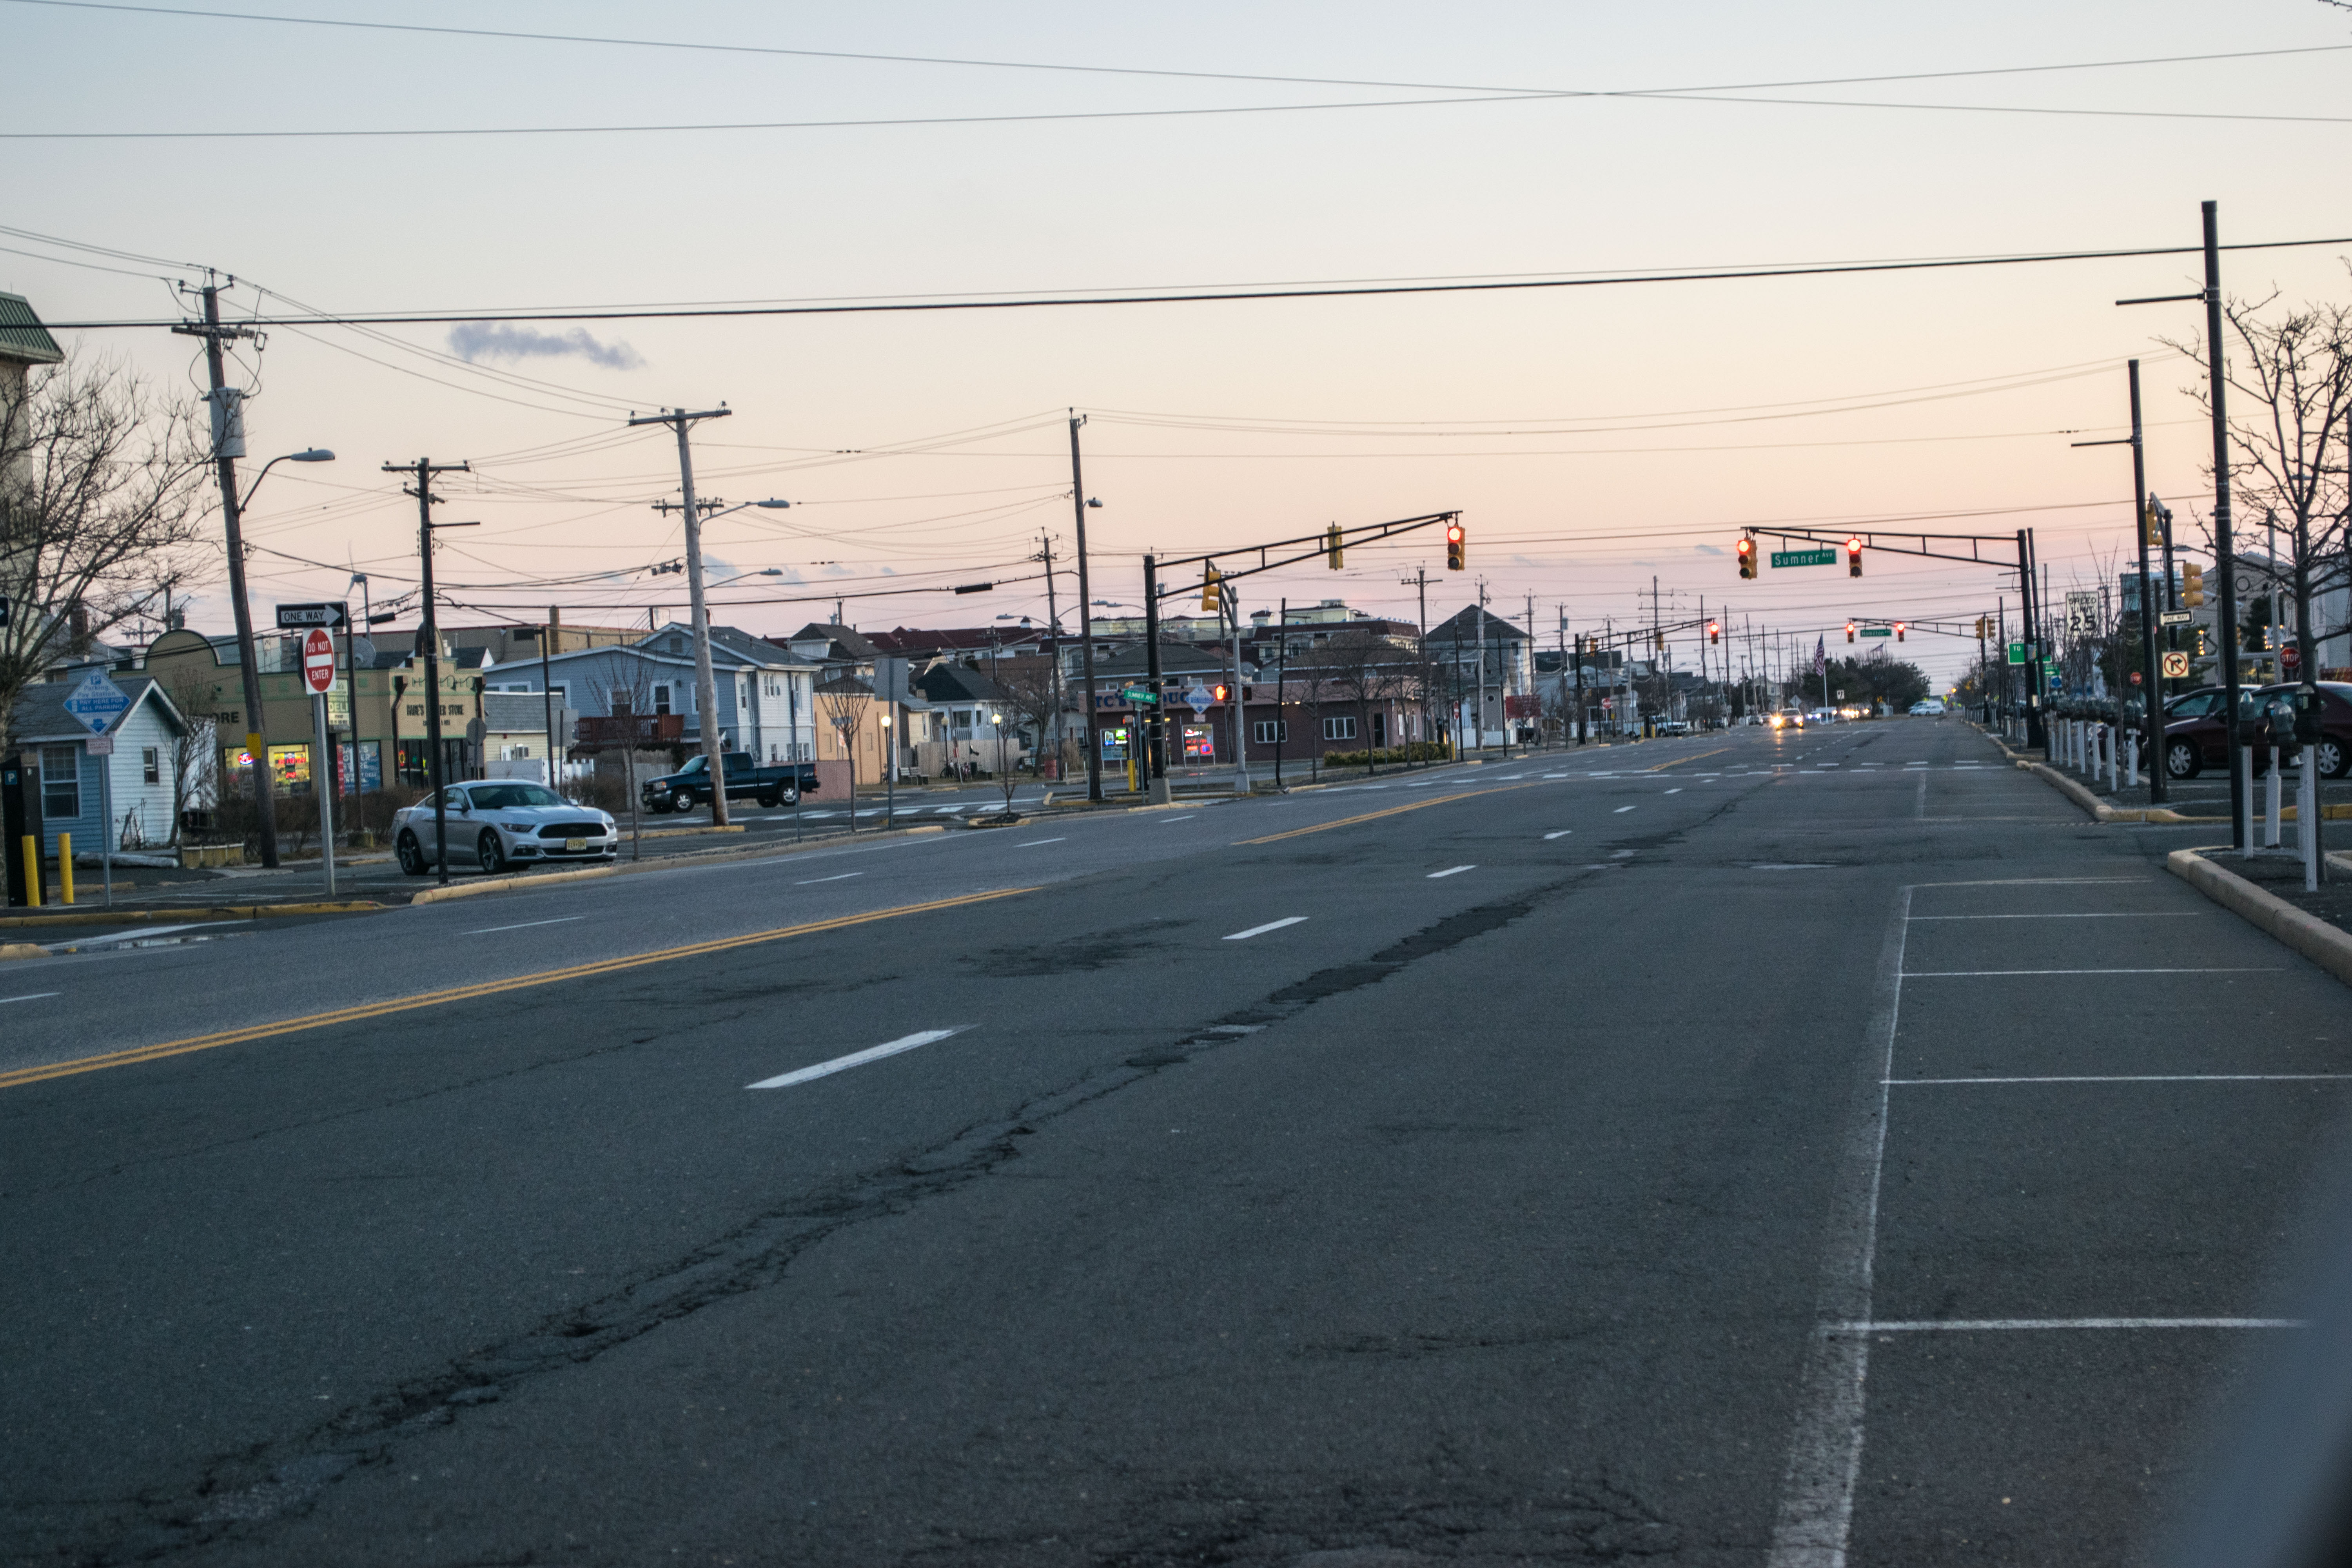 Central Avenue in Seaside Heights, Feb. 2019. (Photo: Daniel Nee)